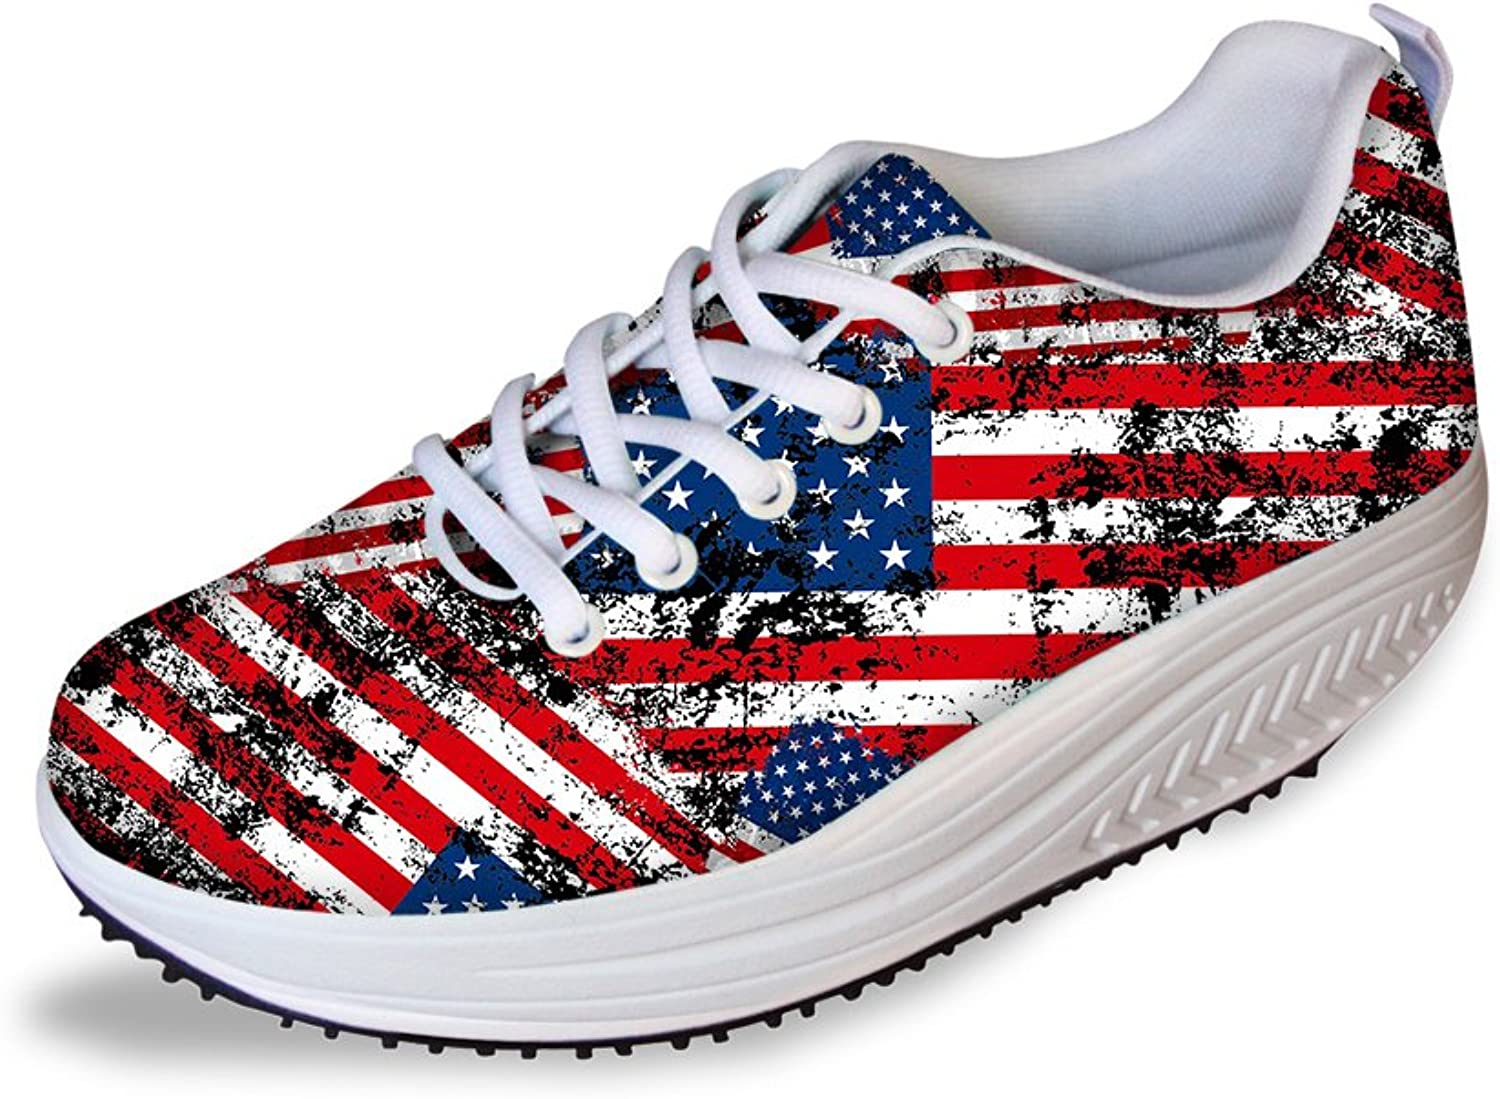 Classic American Flag Print Women's Fitness Sneaker Lace-up Athletic Walking shoes Size 5